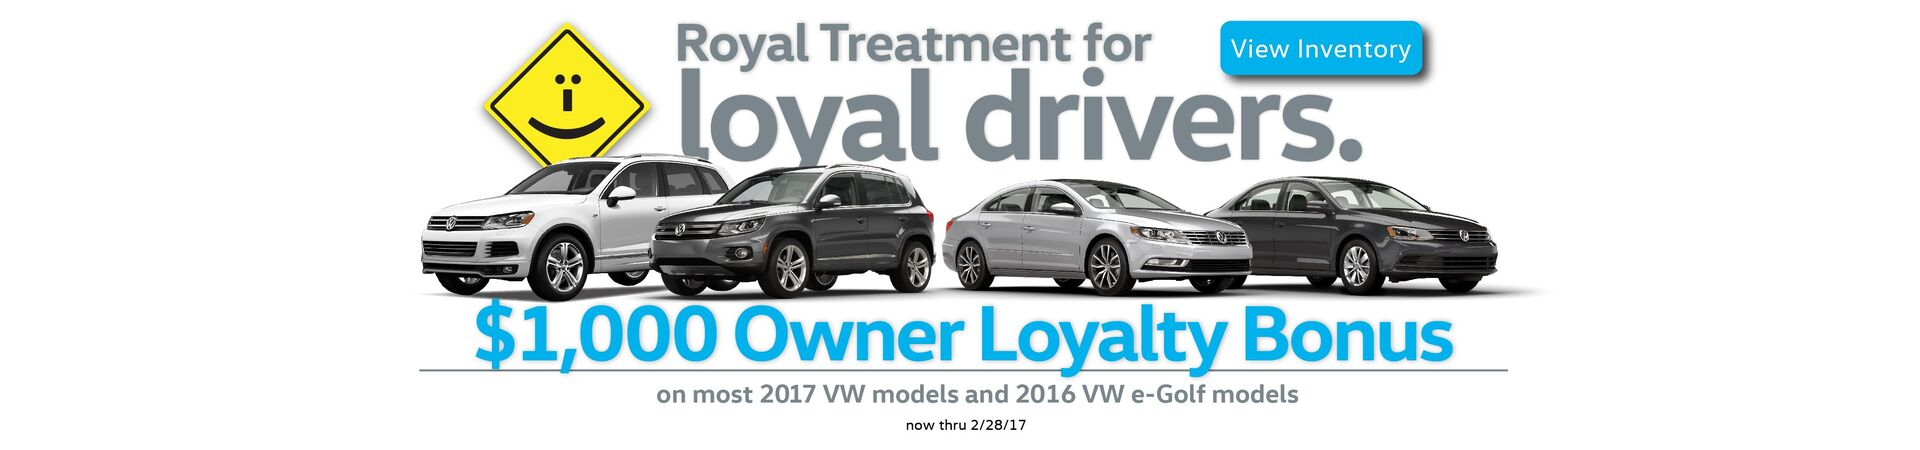 $1,000 Owner Loyalty Bonus on select new 2017 VW models & 2016 VW e-Golf